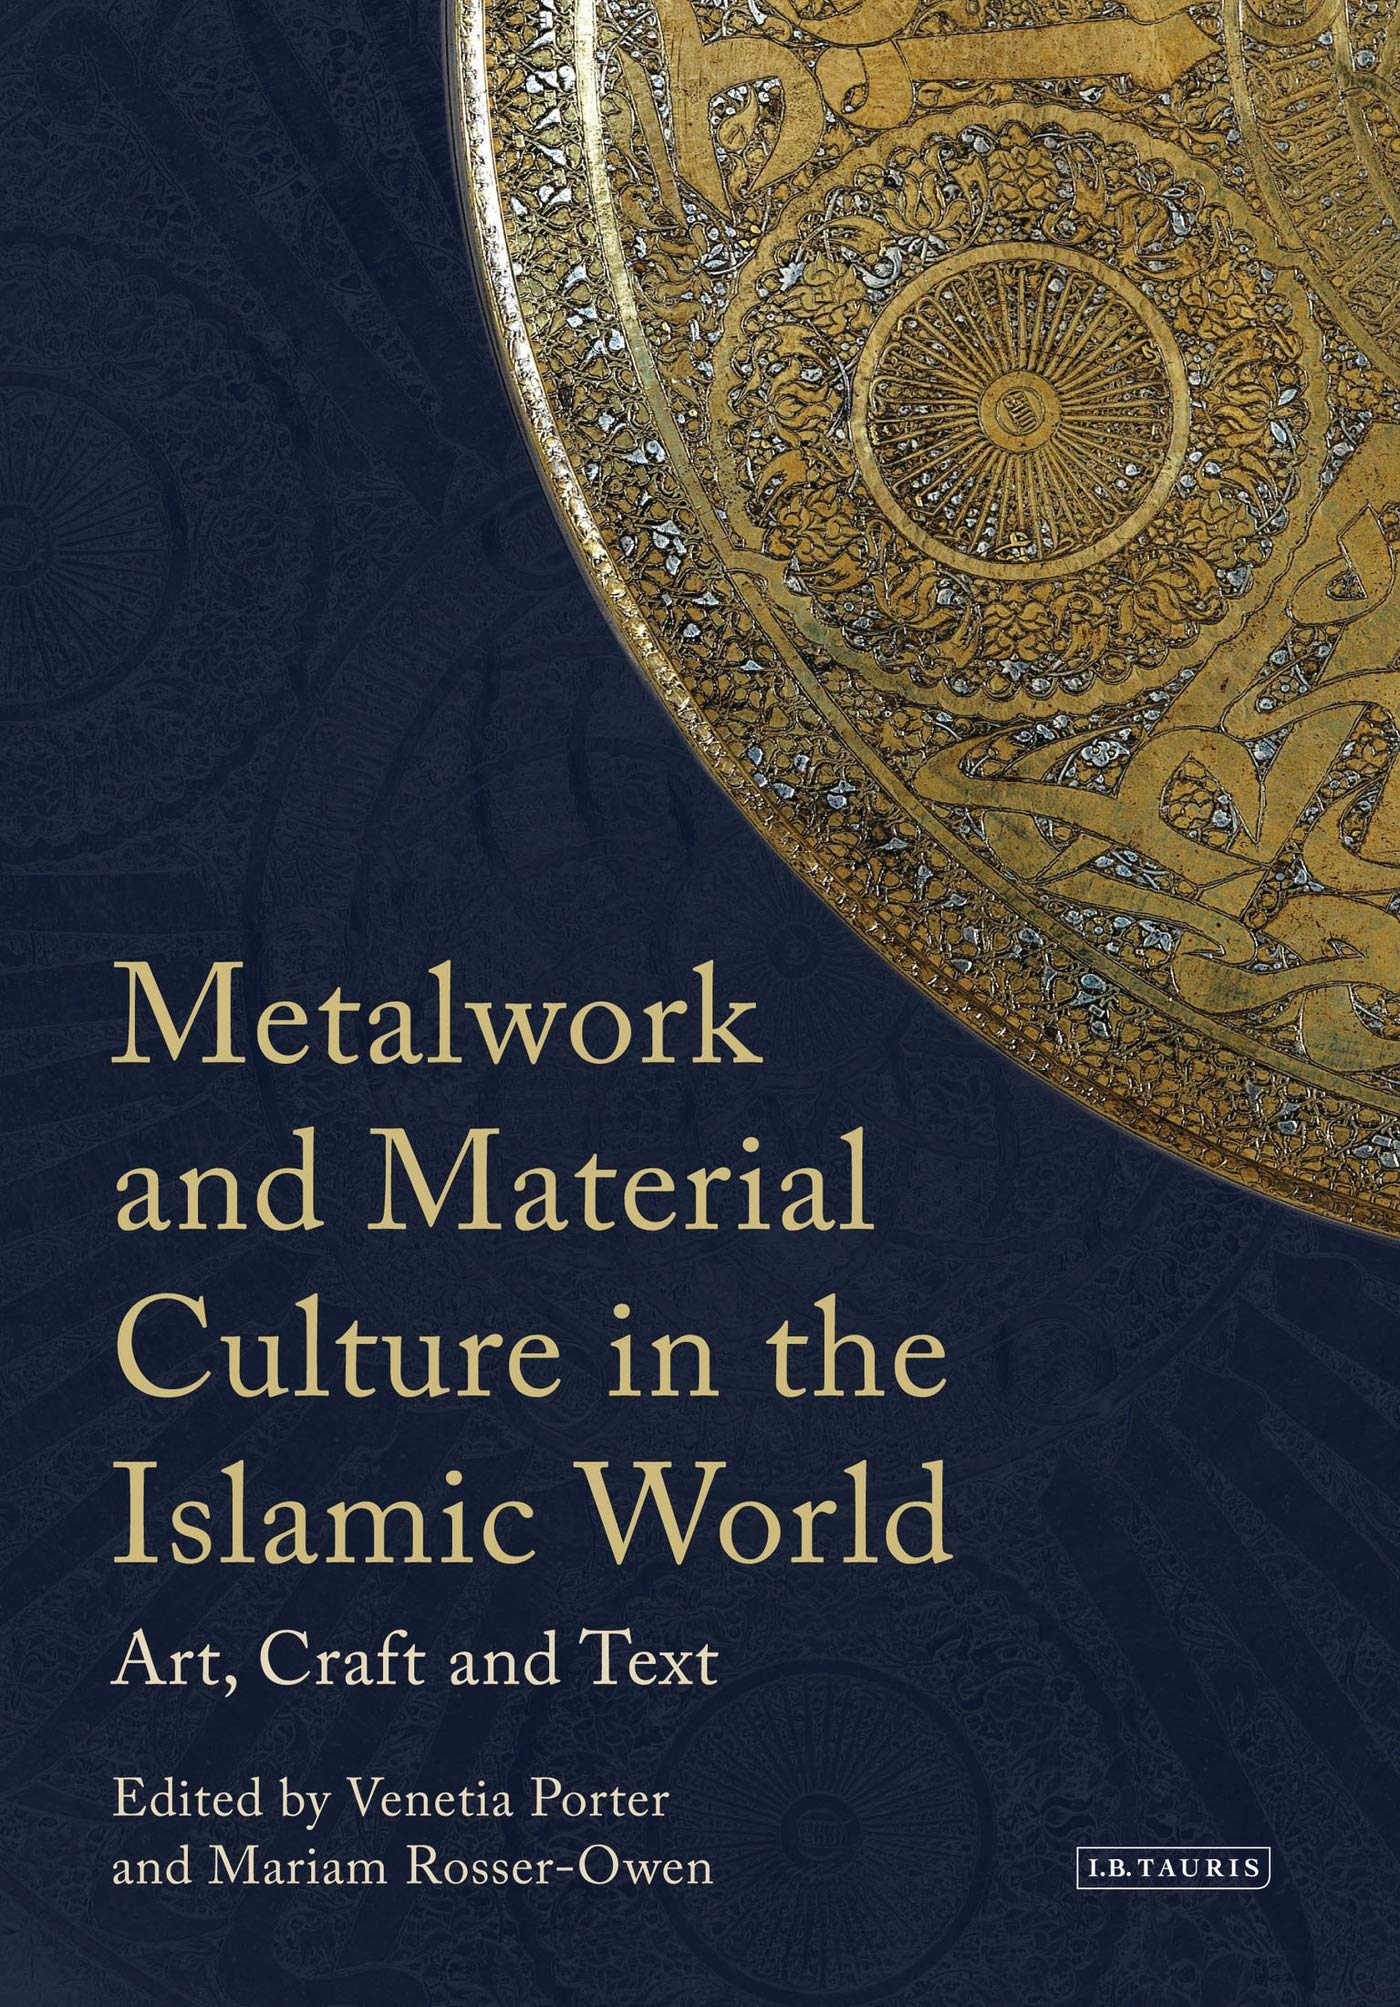 Metalwork and Material Culture in the Islamic World: Art, Craft and Text (Library of Middle East History)